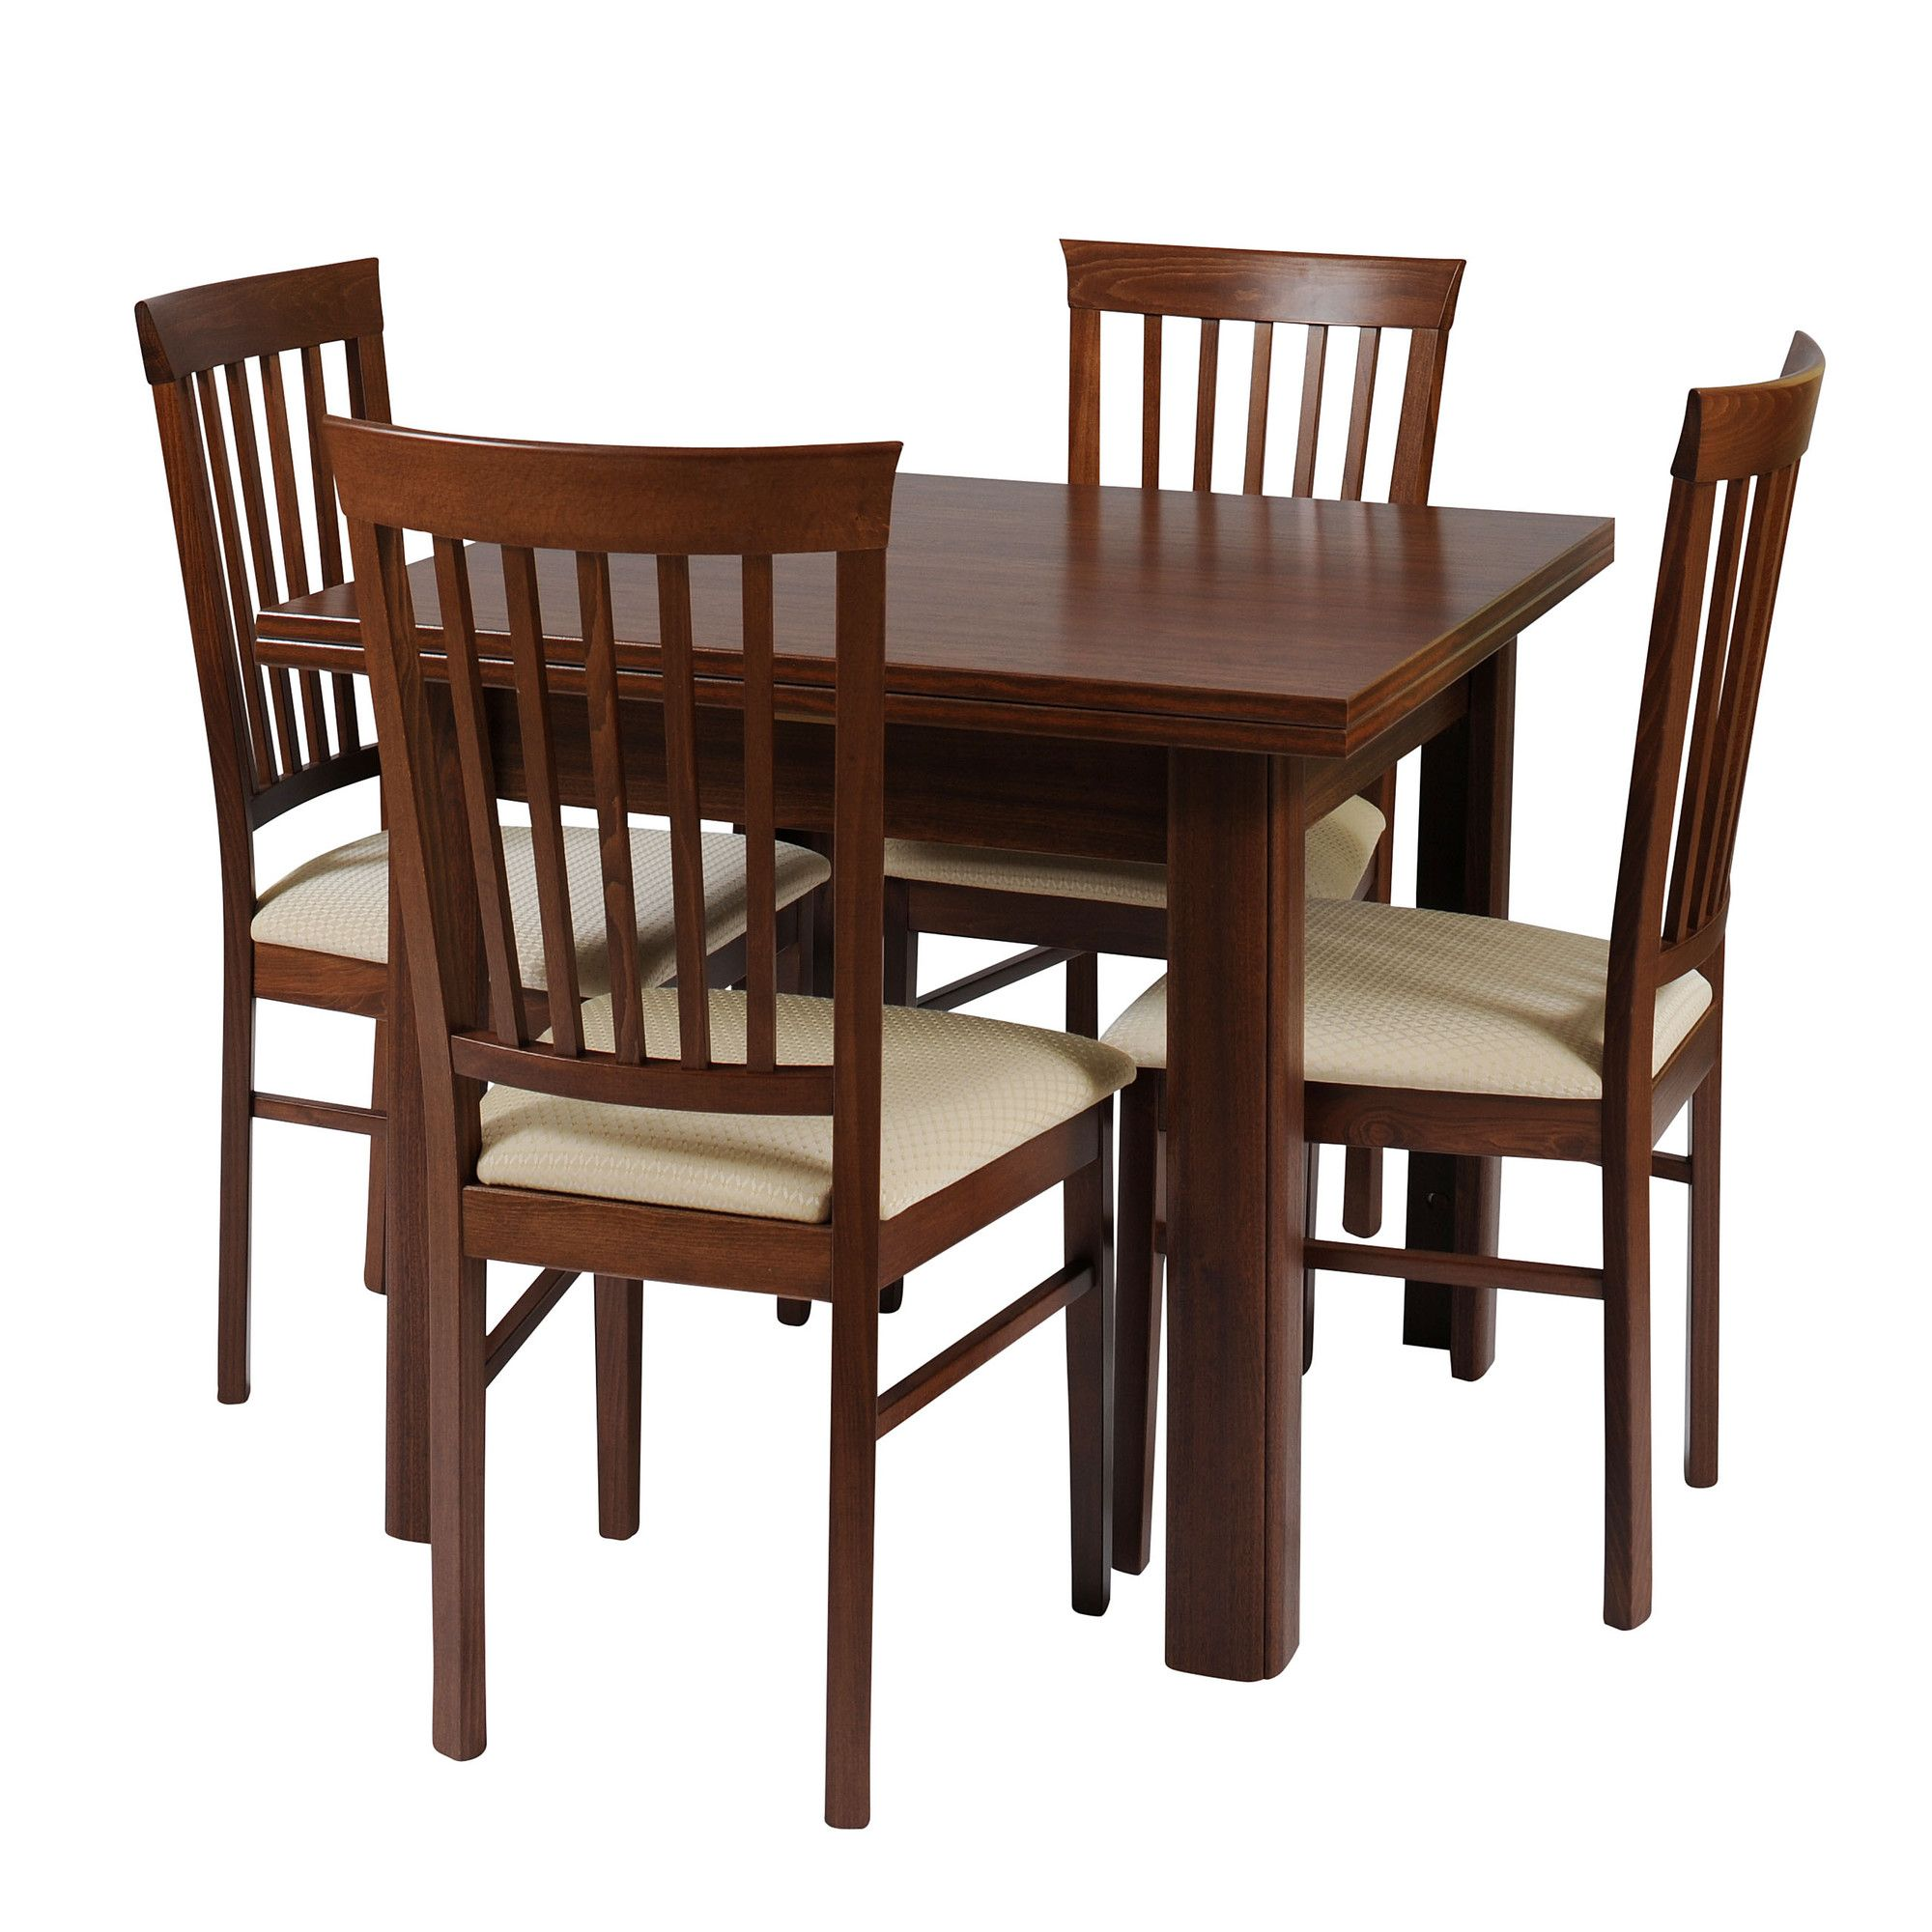 Caxton Byron Extending Dining Set with Slatted Back Chairs in Mahogany at Tesco Direct